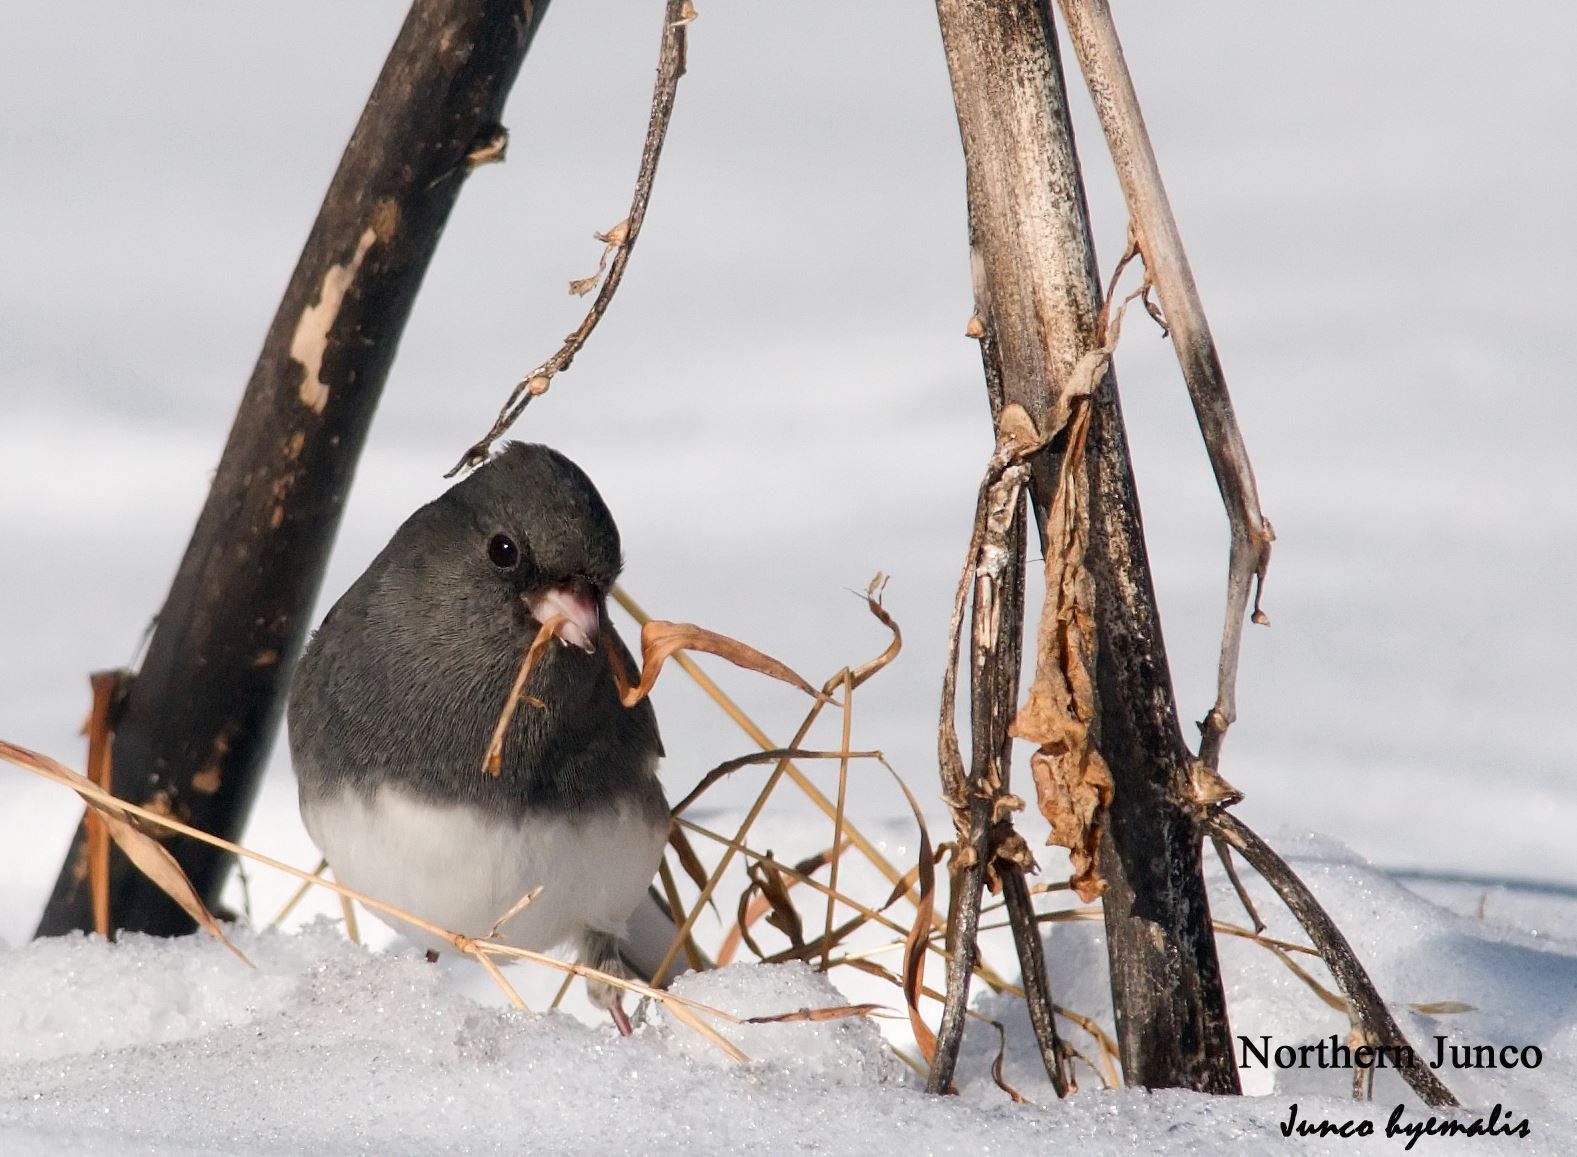 Northern Junco